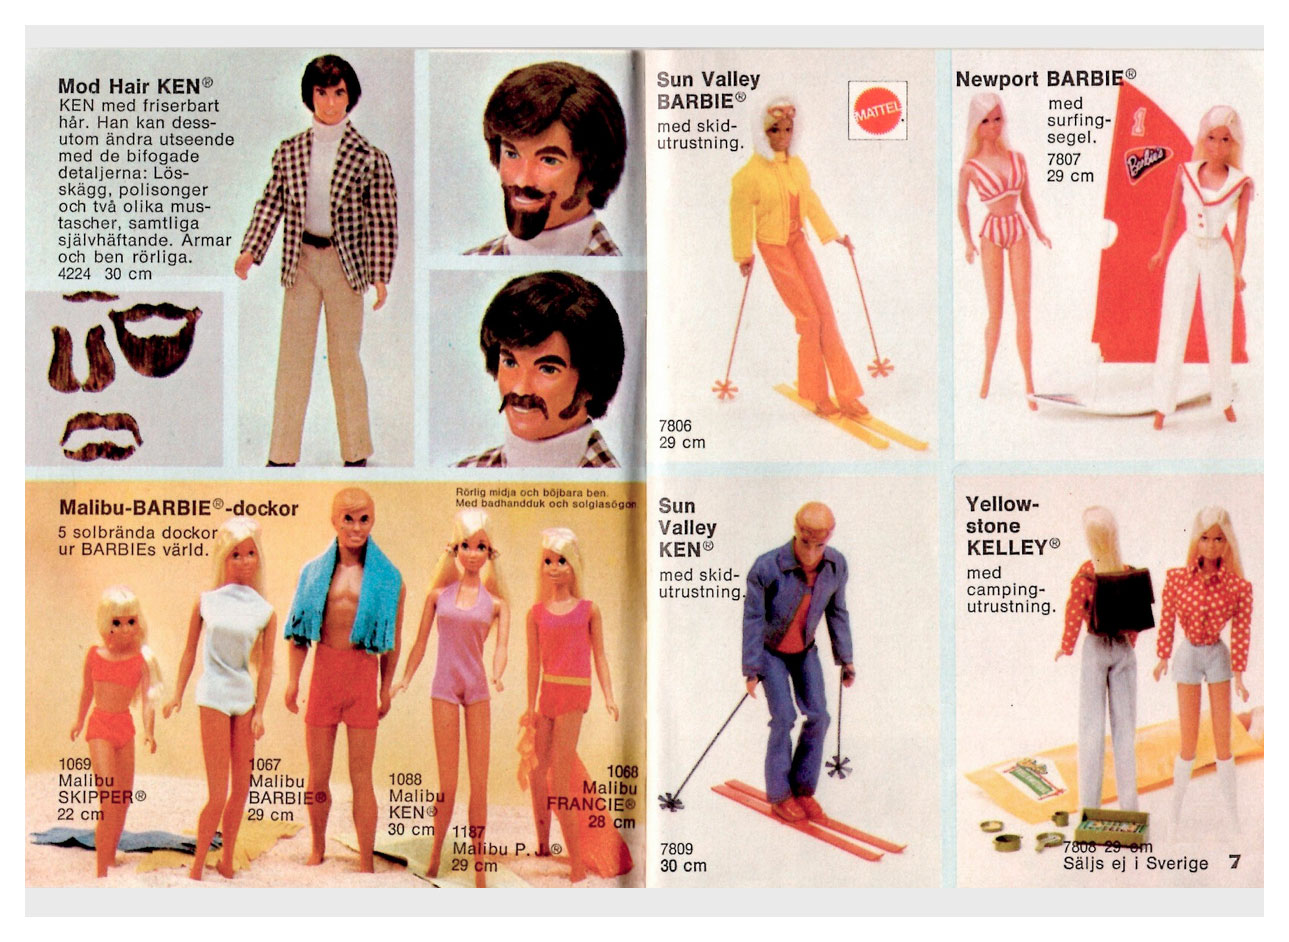 From 1974 Swedish Barbie booklet